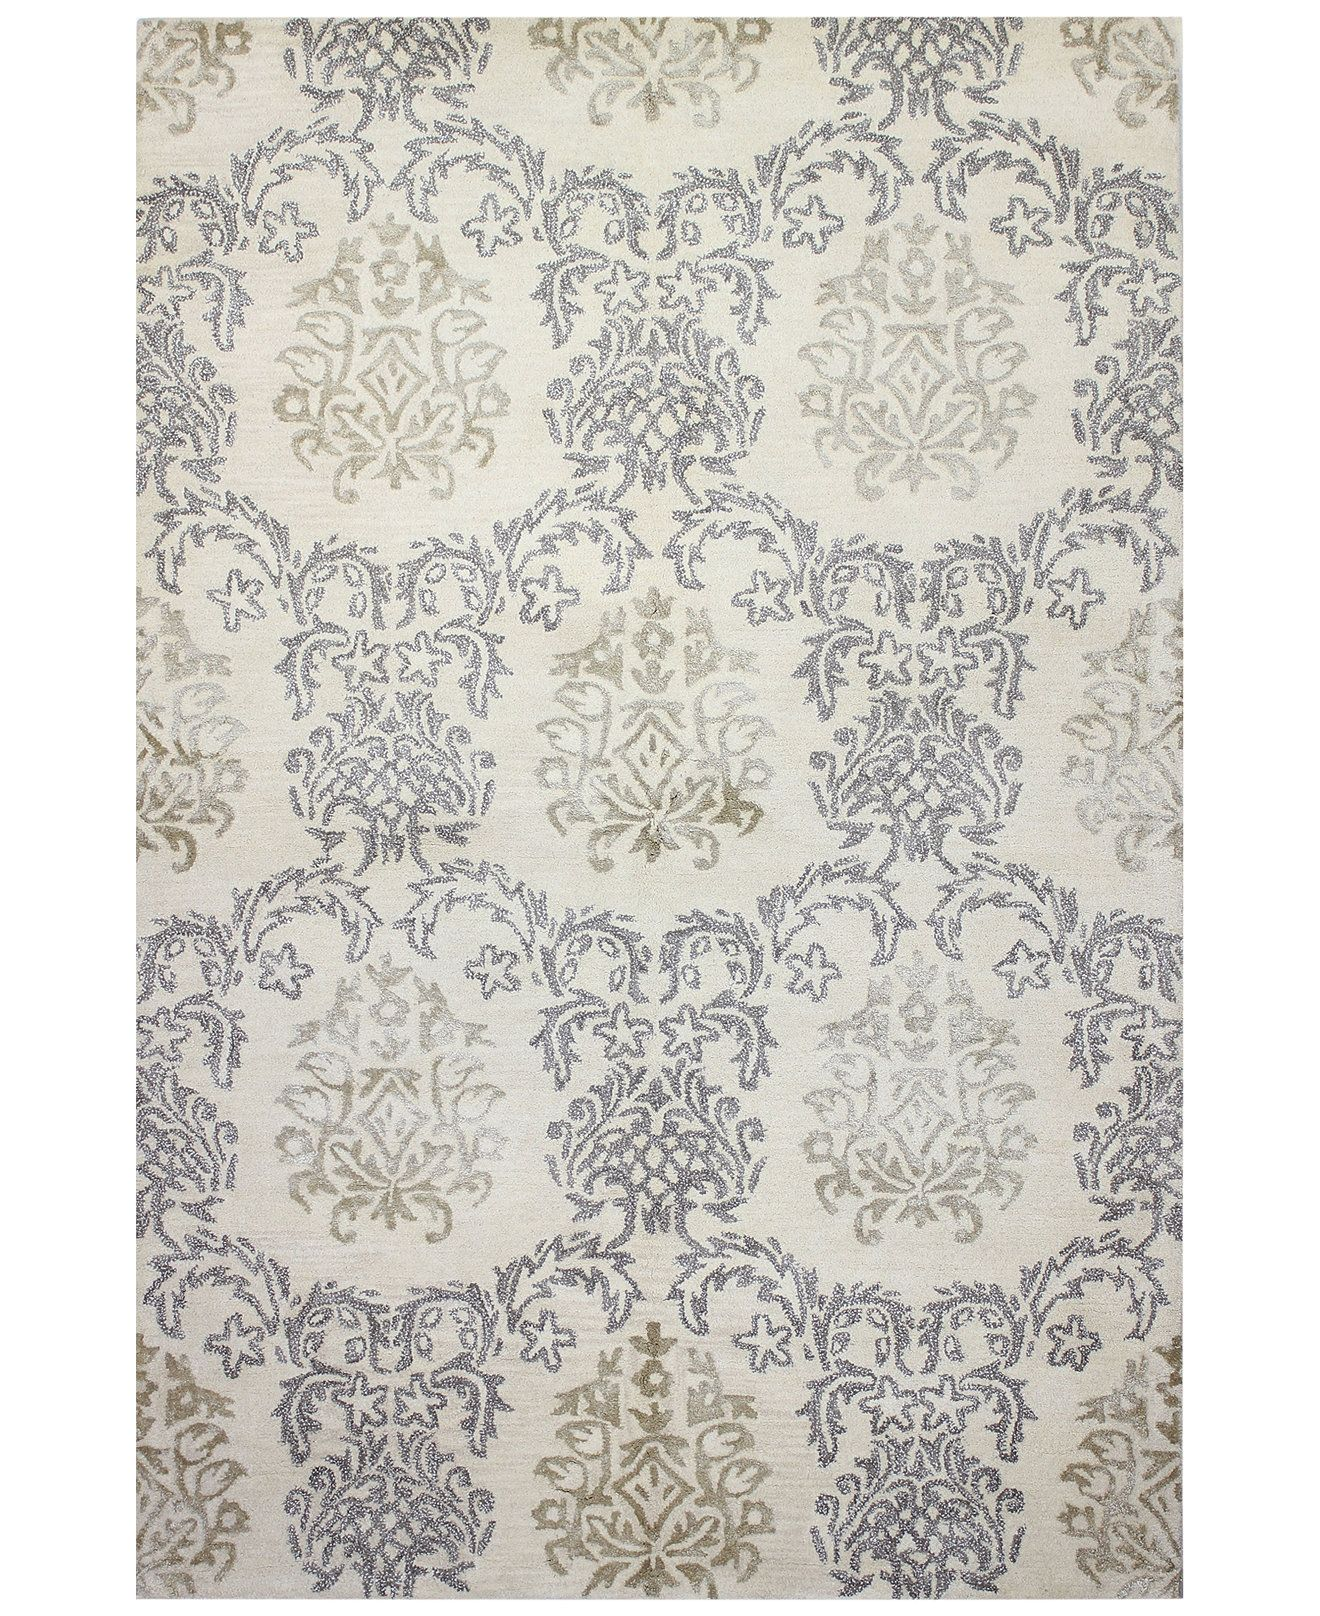 Macy's Fine Rug Gallery Bordeaux Damask Ivory Area Rugs - Rugs - Macy's Bridal and Wedding Registry